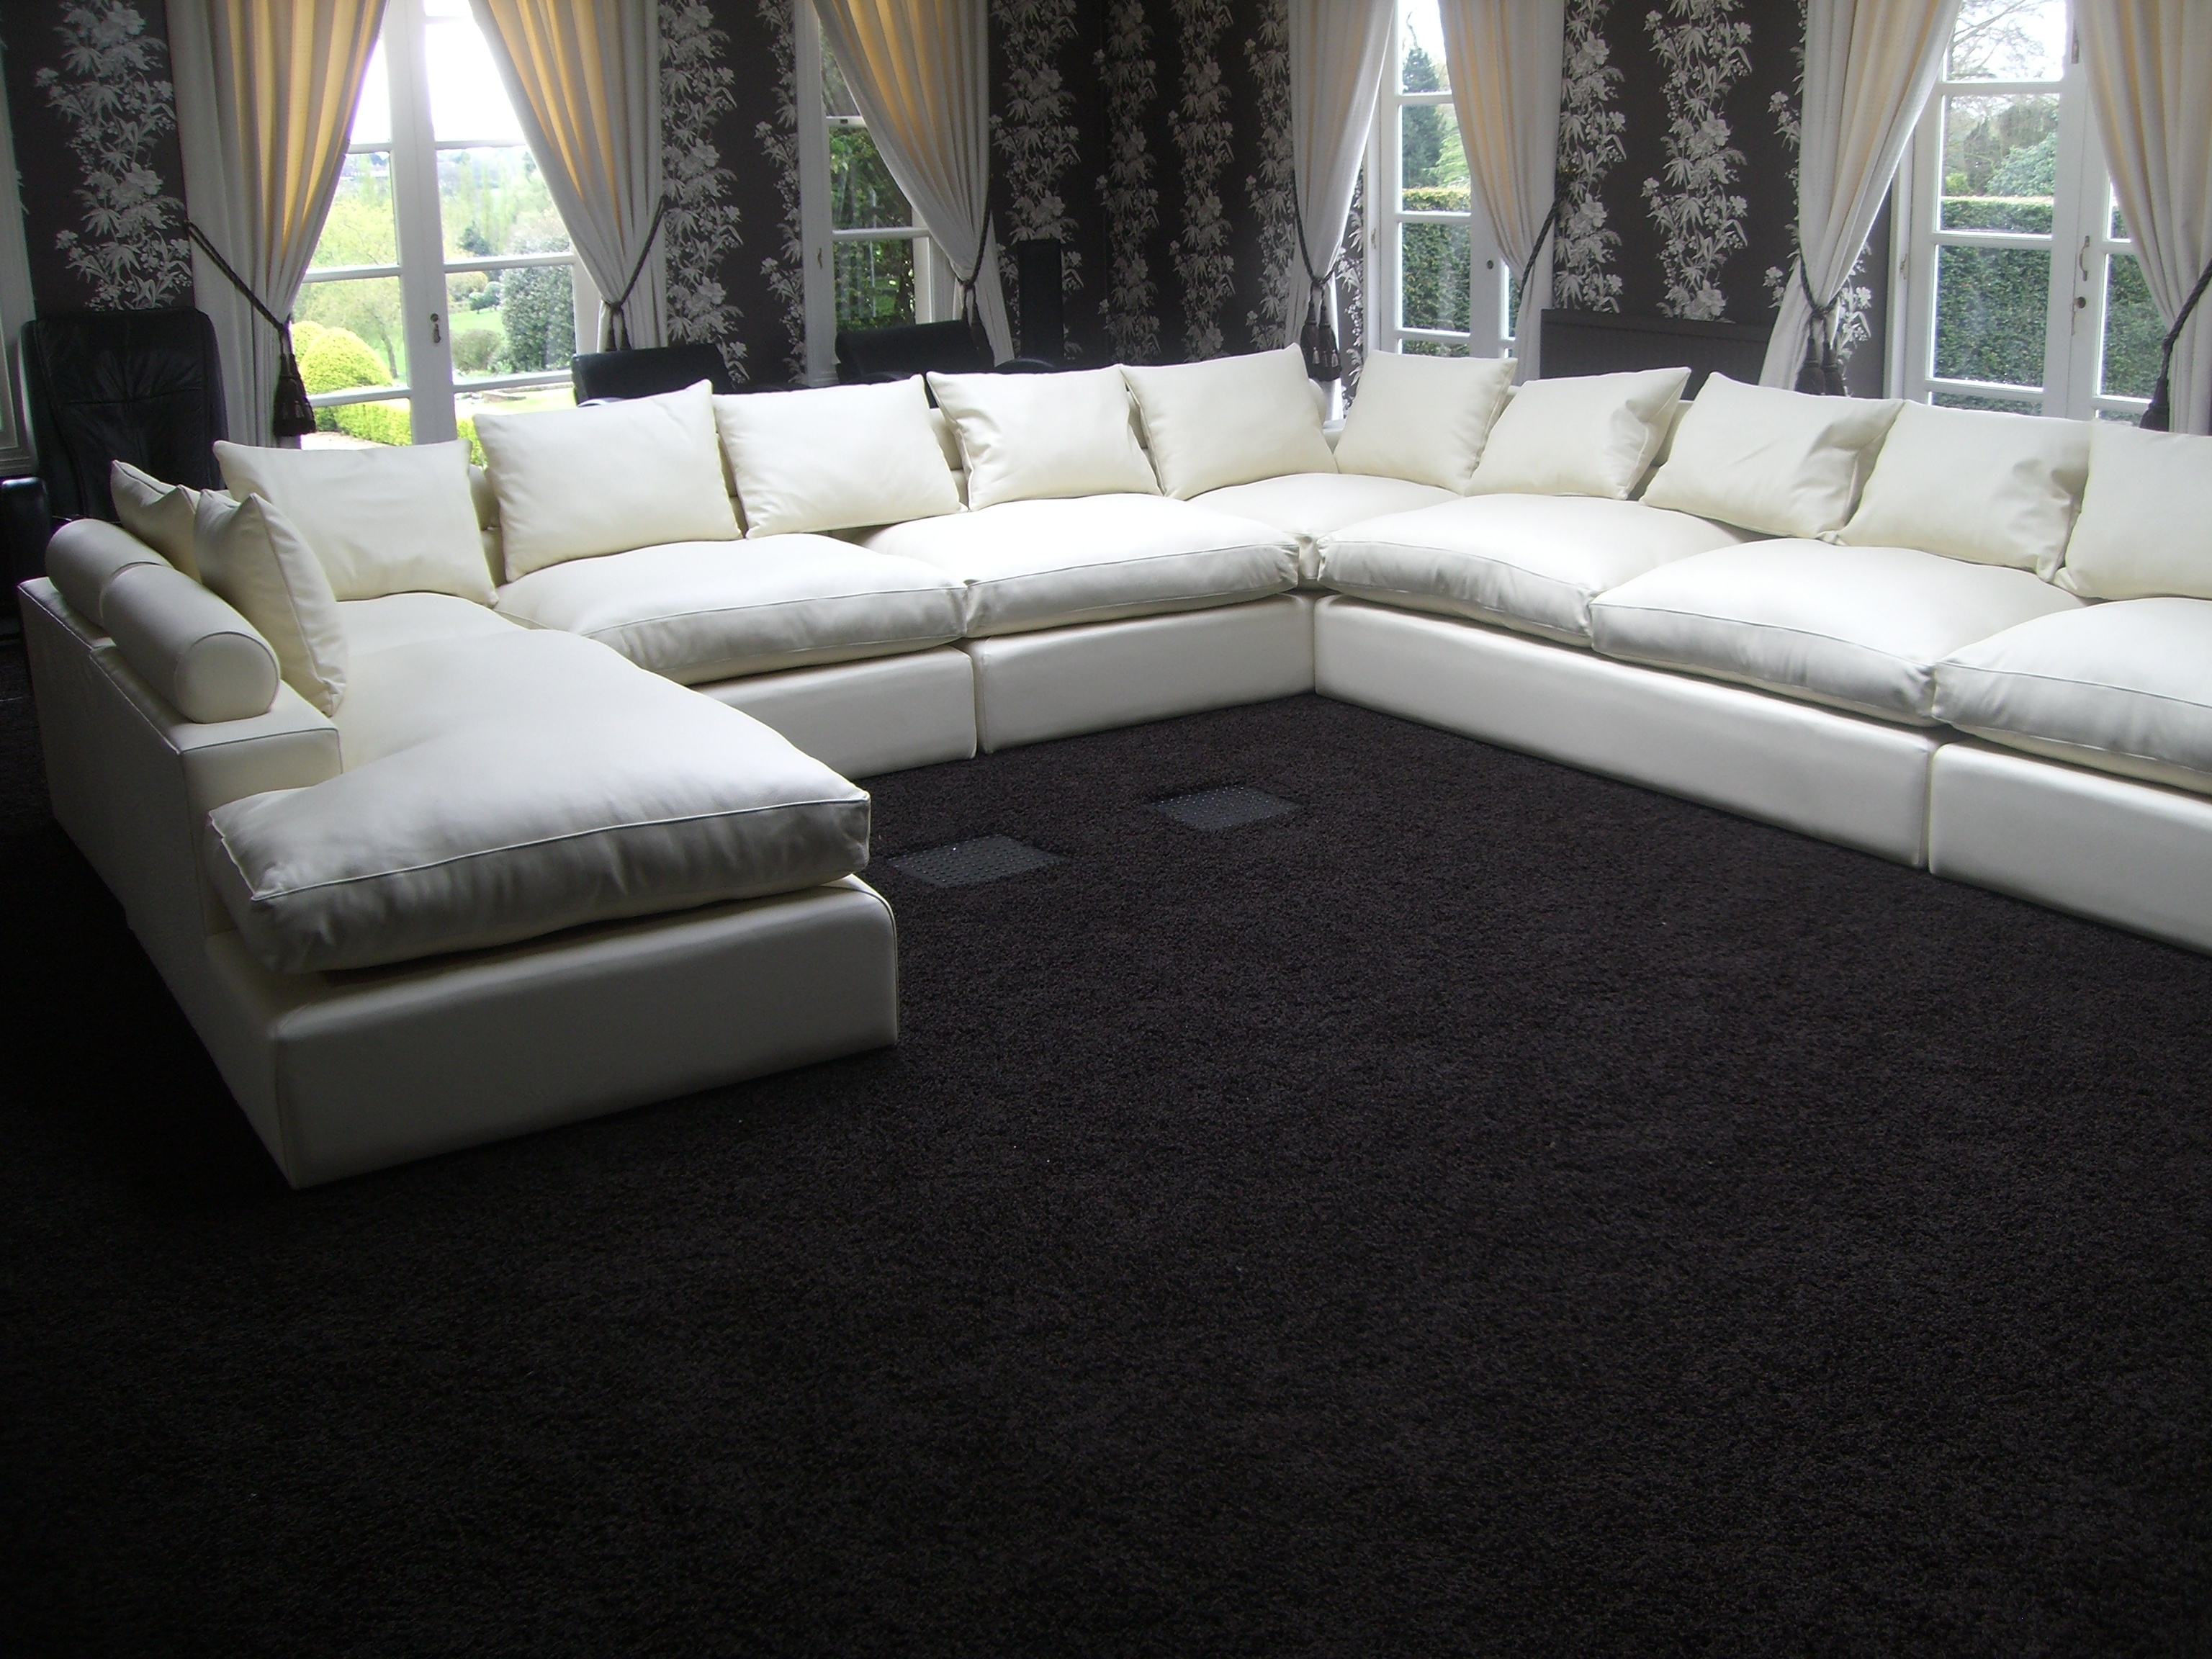 Most Popular Large U Shaped Sofa – Fjellkjeden With Huge U Shaped Sectionals (View 10 of 20)